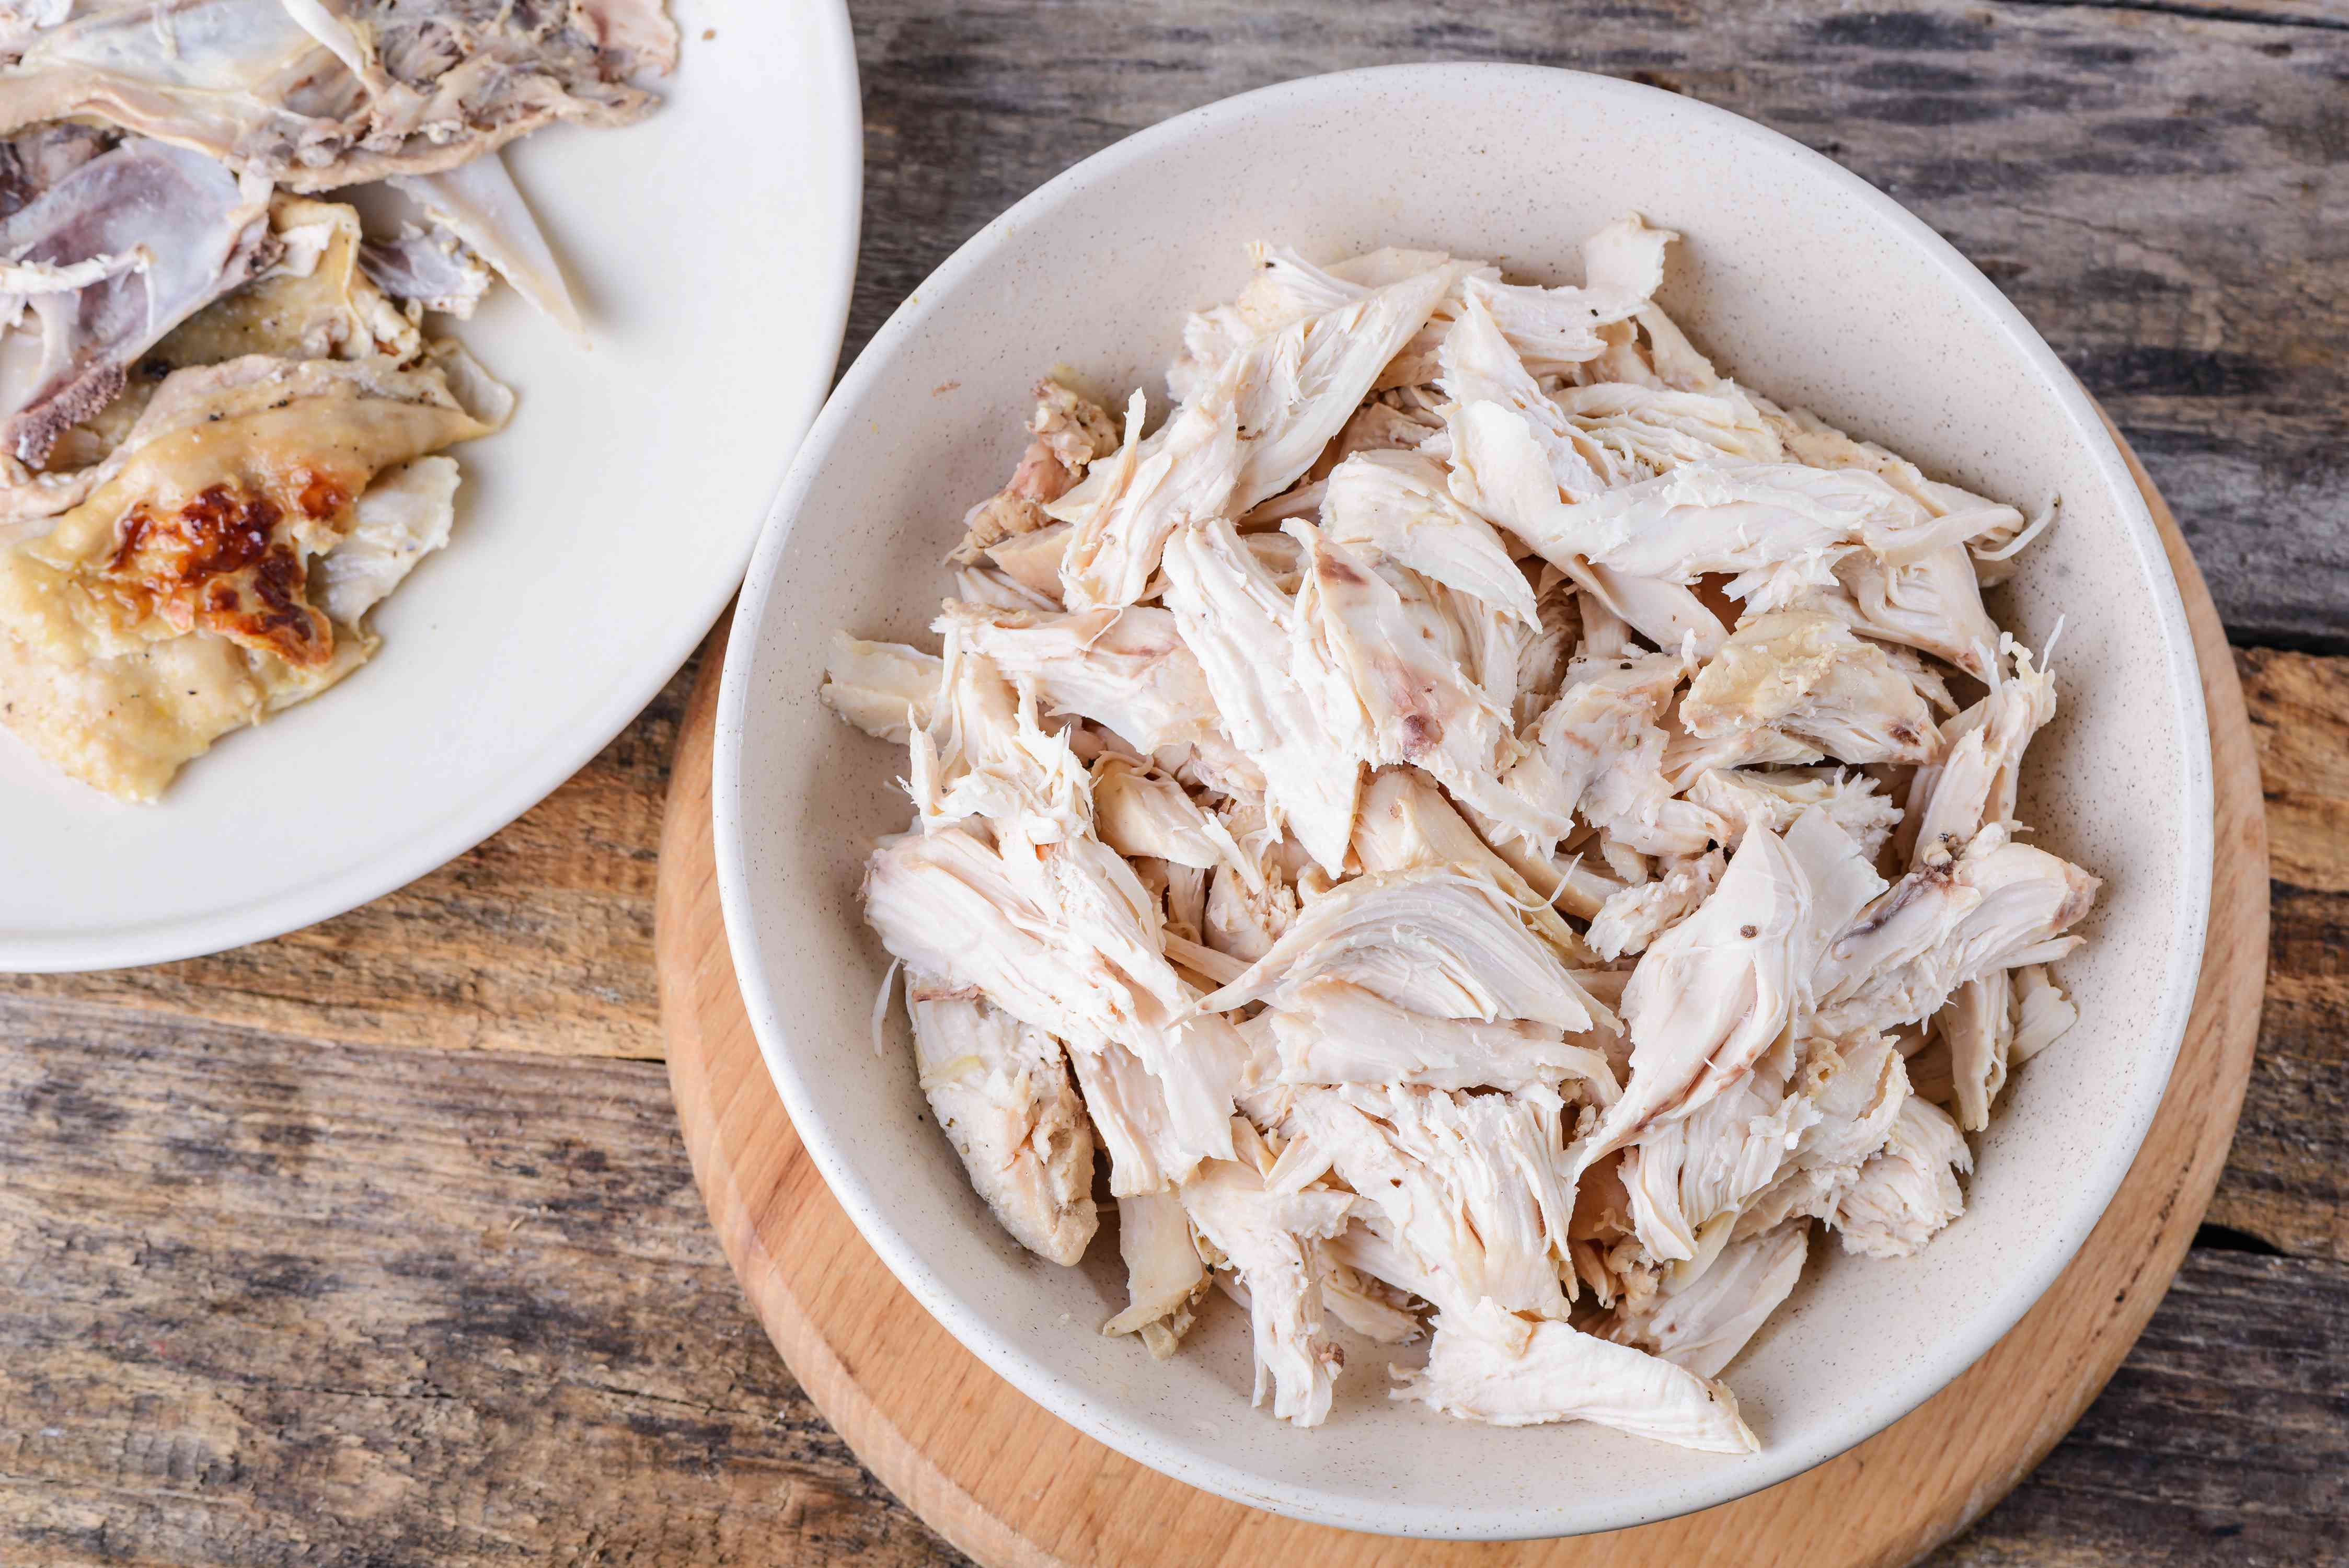 Shredded chicken on a plate